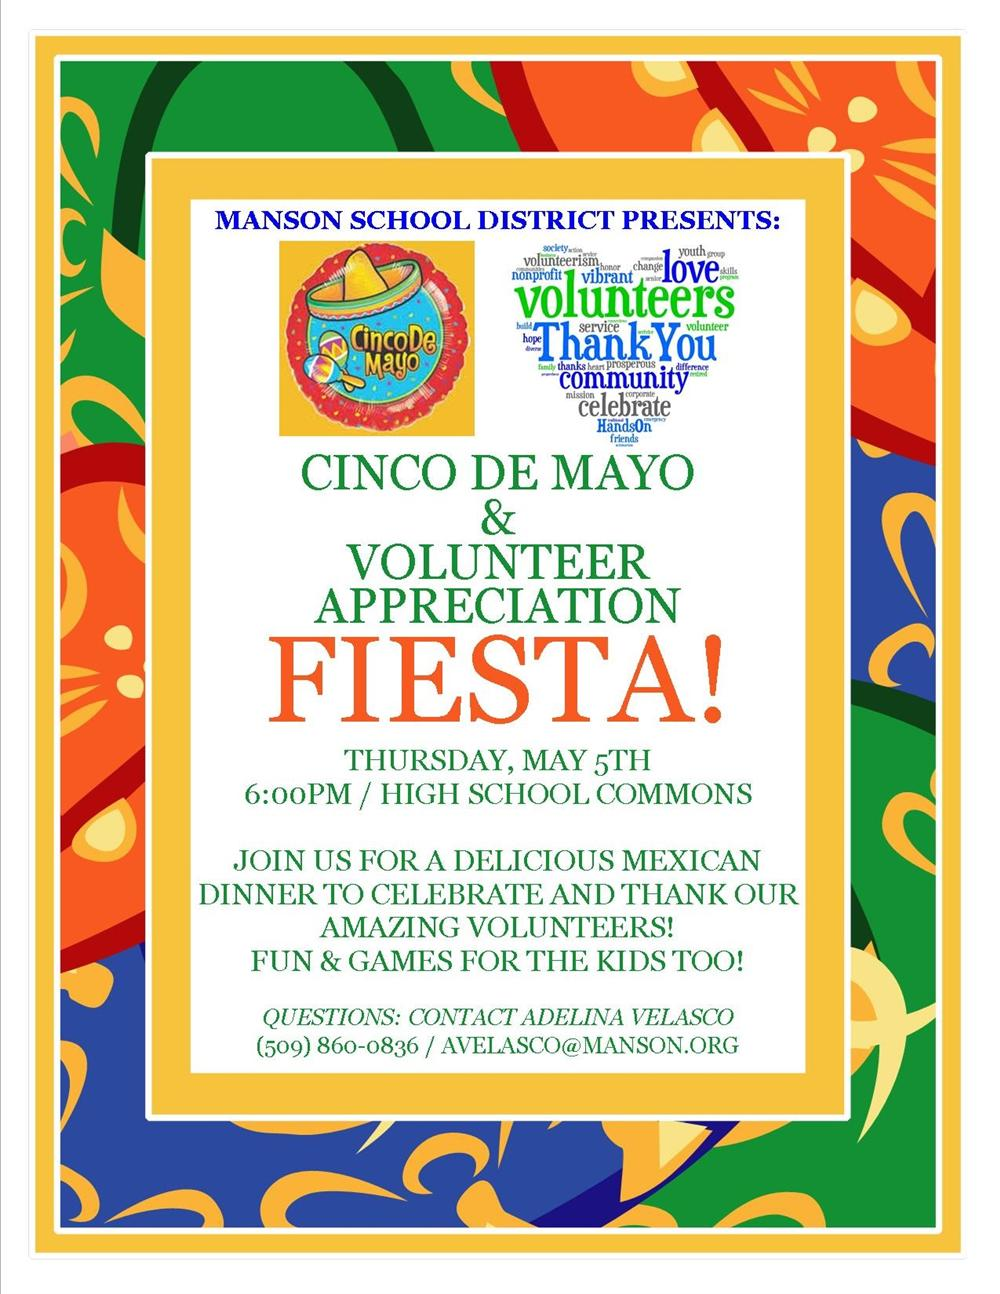 Cinco de Mayo & Volunteer Appreciation!